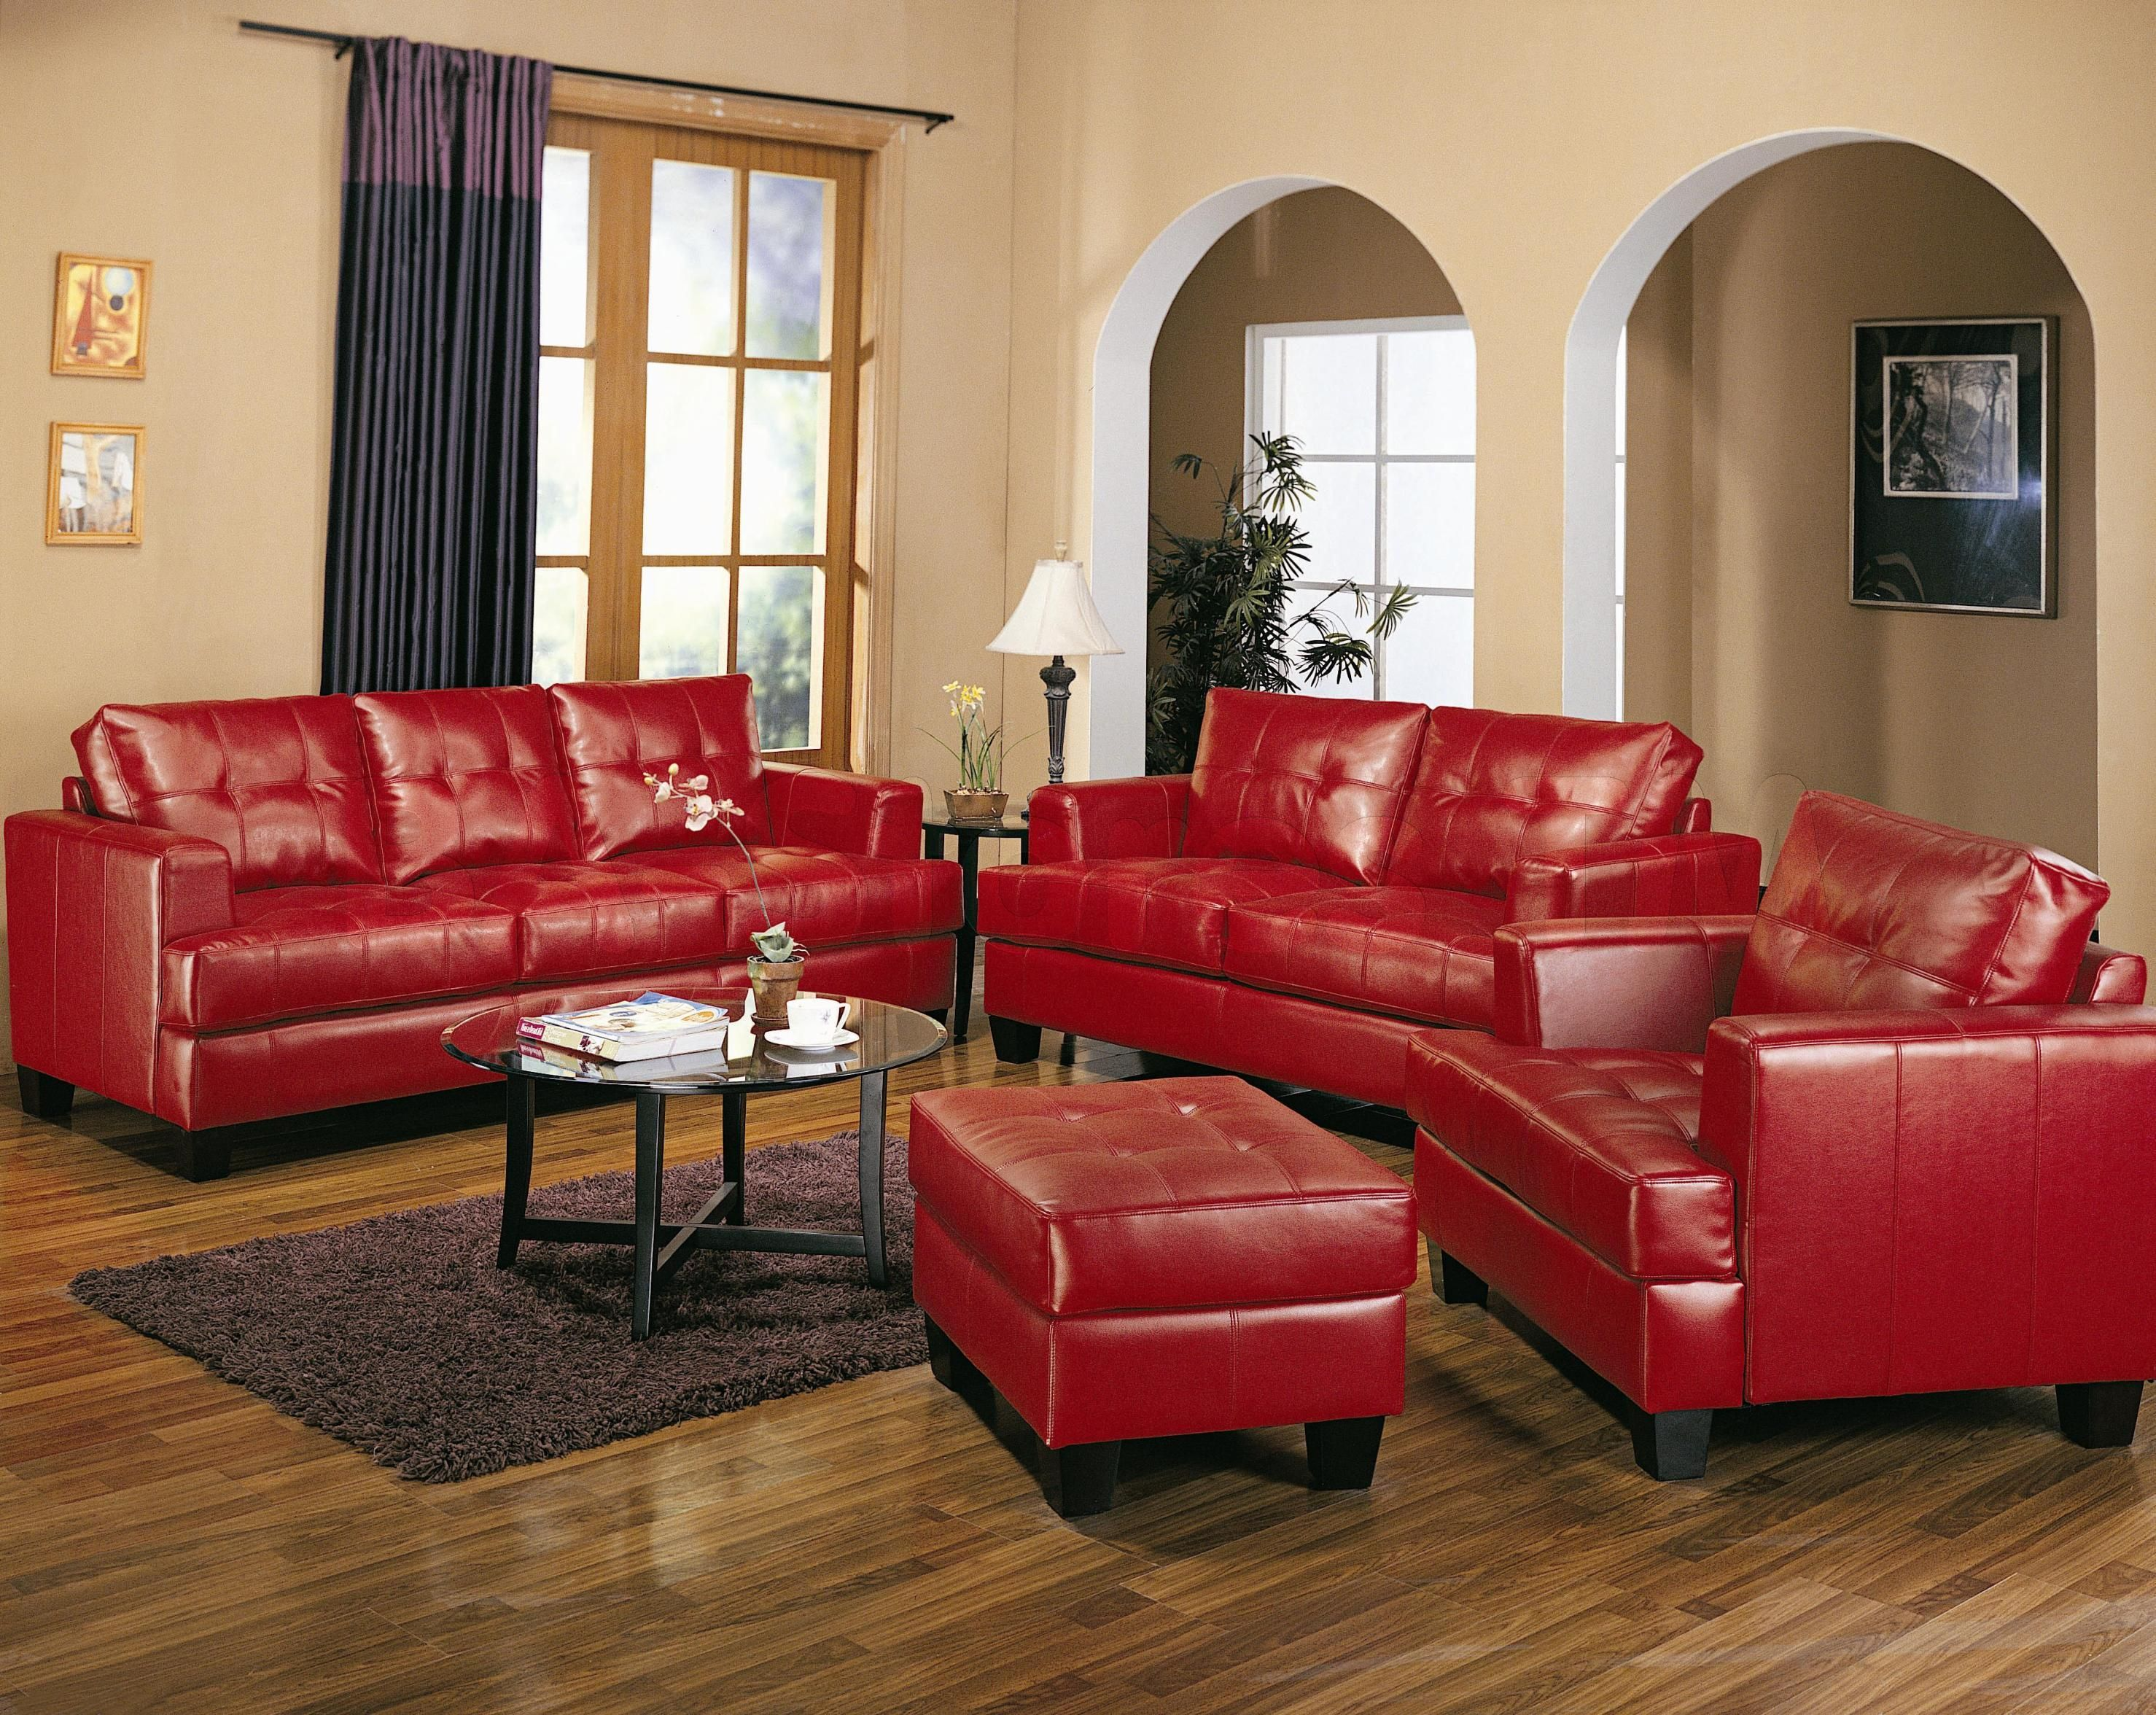 Rooms With A Red Leather Couch Google Search Fine Furniture